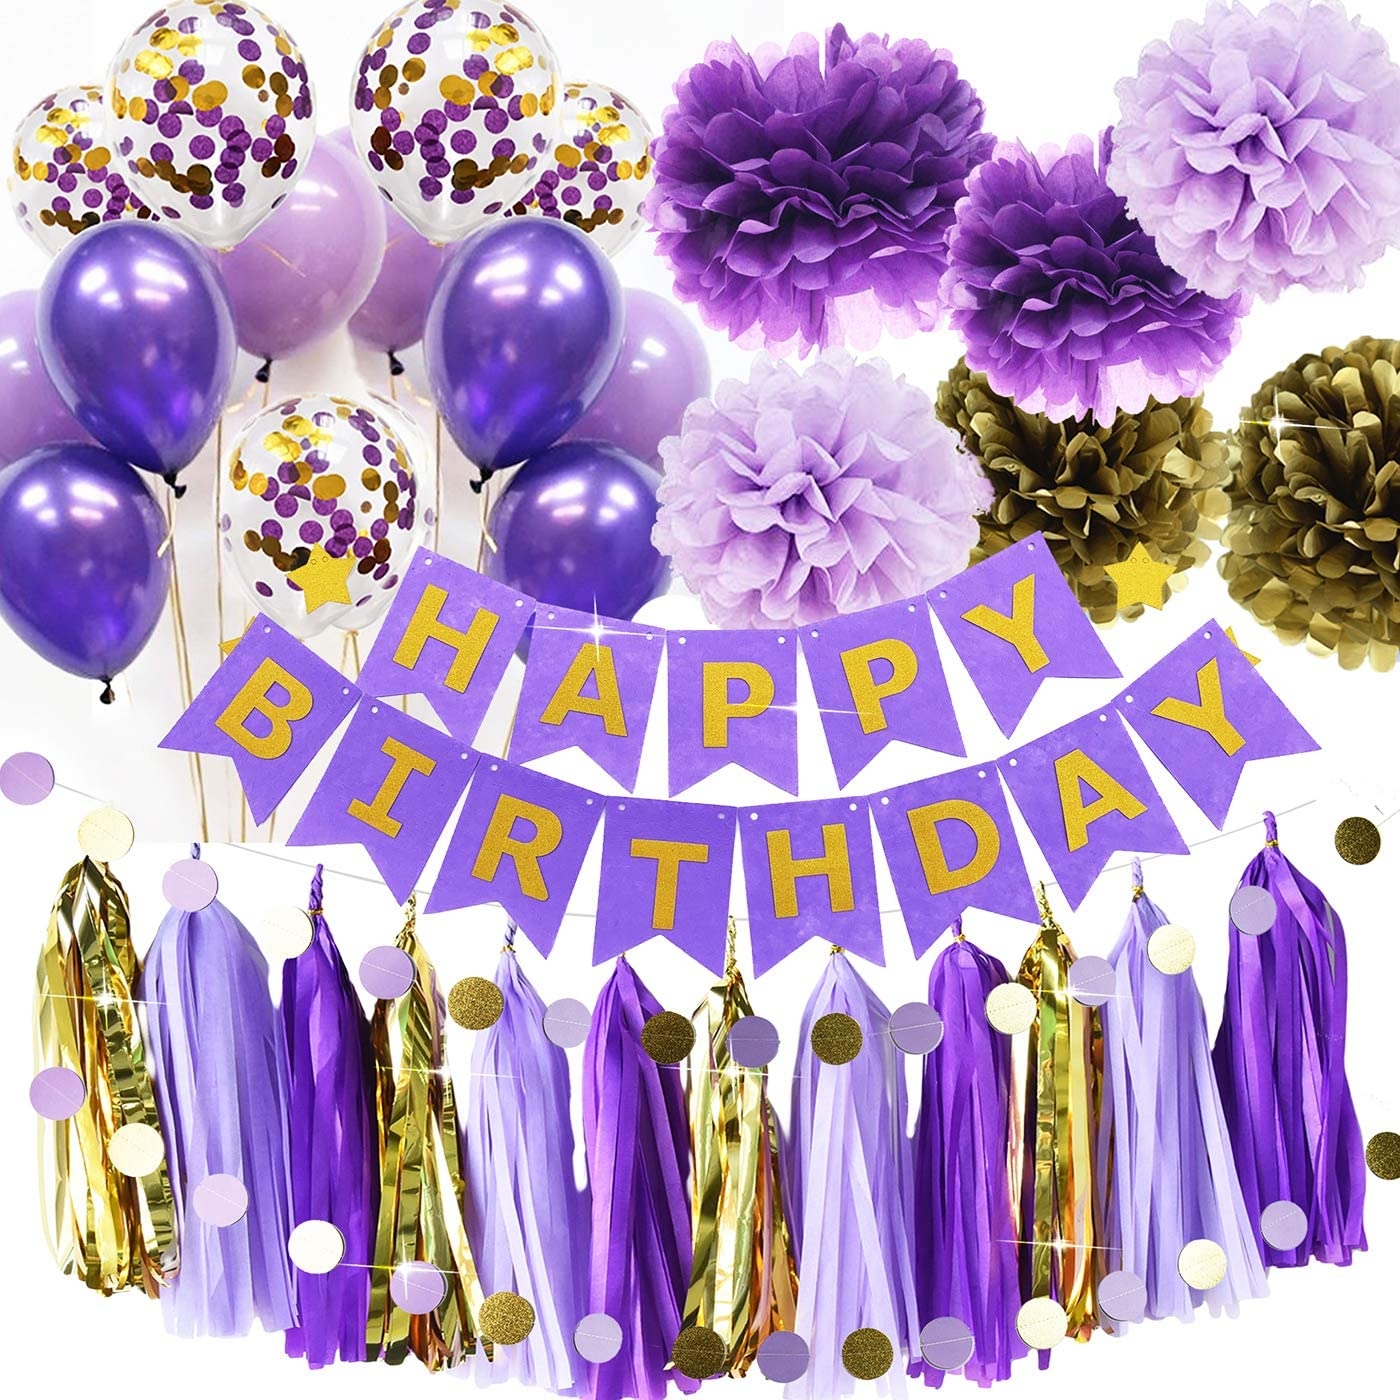 Purple Gold Birthday Party Decorations Qian's Party Purple Gold Confetti Balloons Happy Birthday Banner Purple Gold Birthday Party Supplies for Women's 20th/30th/40th/50th Birthday Party Decorations